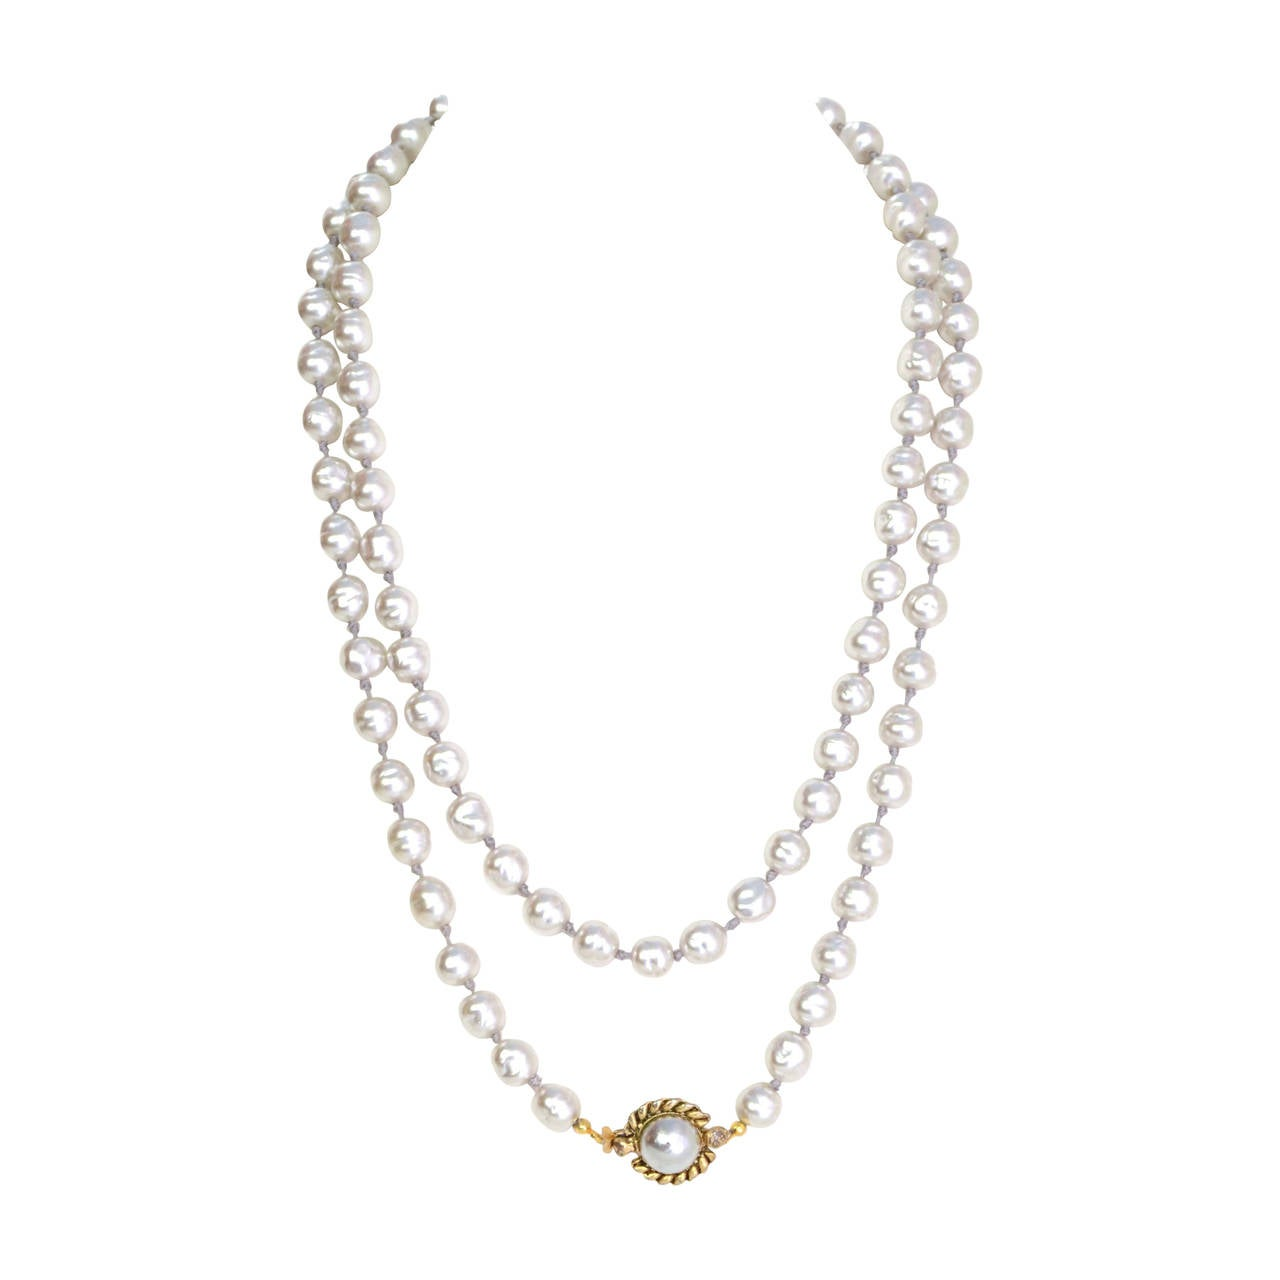 CHANEL Vintage '81 Grey Pearl Long Strand Necklace 1